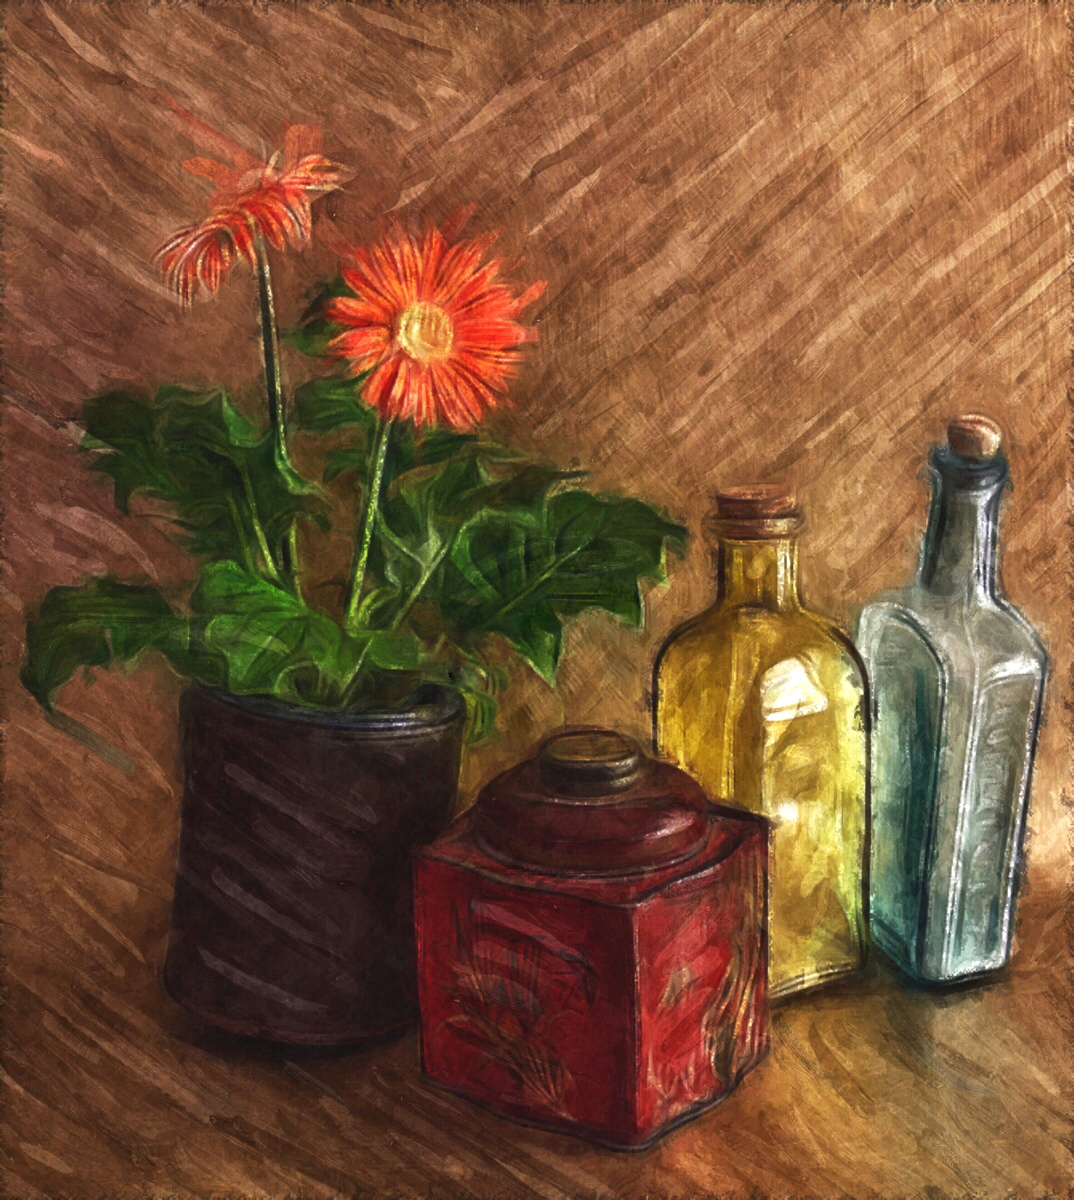 Still Life with Gerbers, Bottles, and Tea Tin